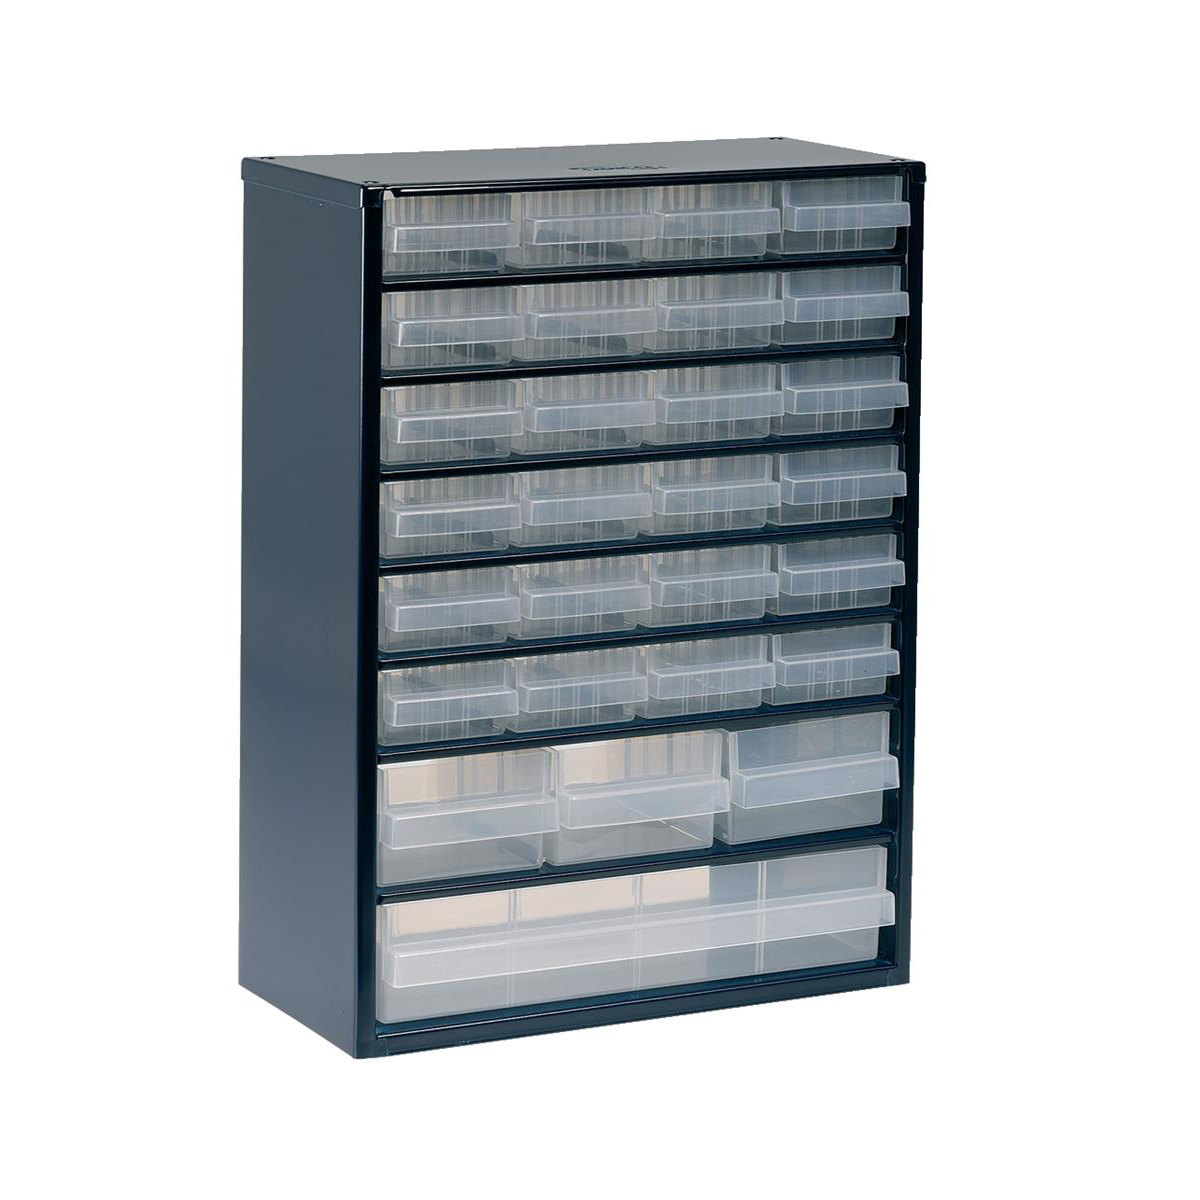 Image for Raaco Workshop Kit 1-Cabinet 3-Steel Wall Panels 22-Assorted Clips 16-Storage Bins Easy Set-Up Ref 139830